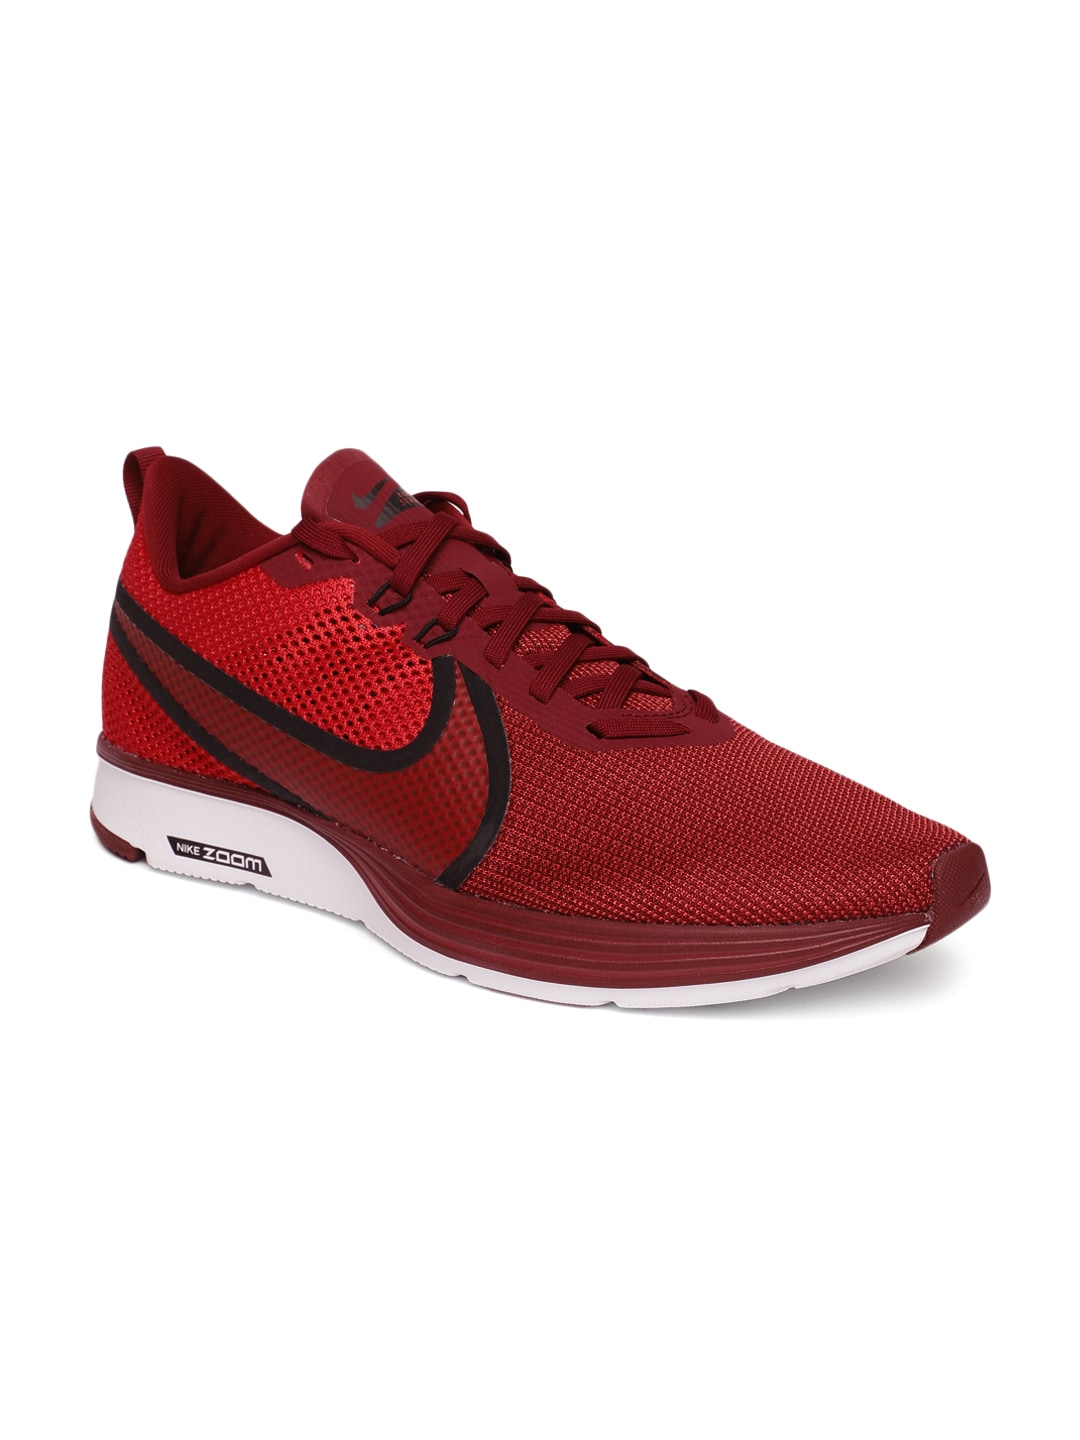 dfc7ab4f289 Nike Red Shoes - Buy Nike Red Shoes Online in India